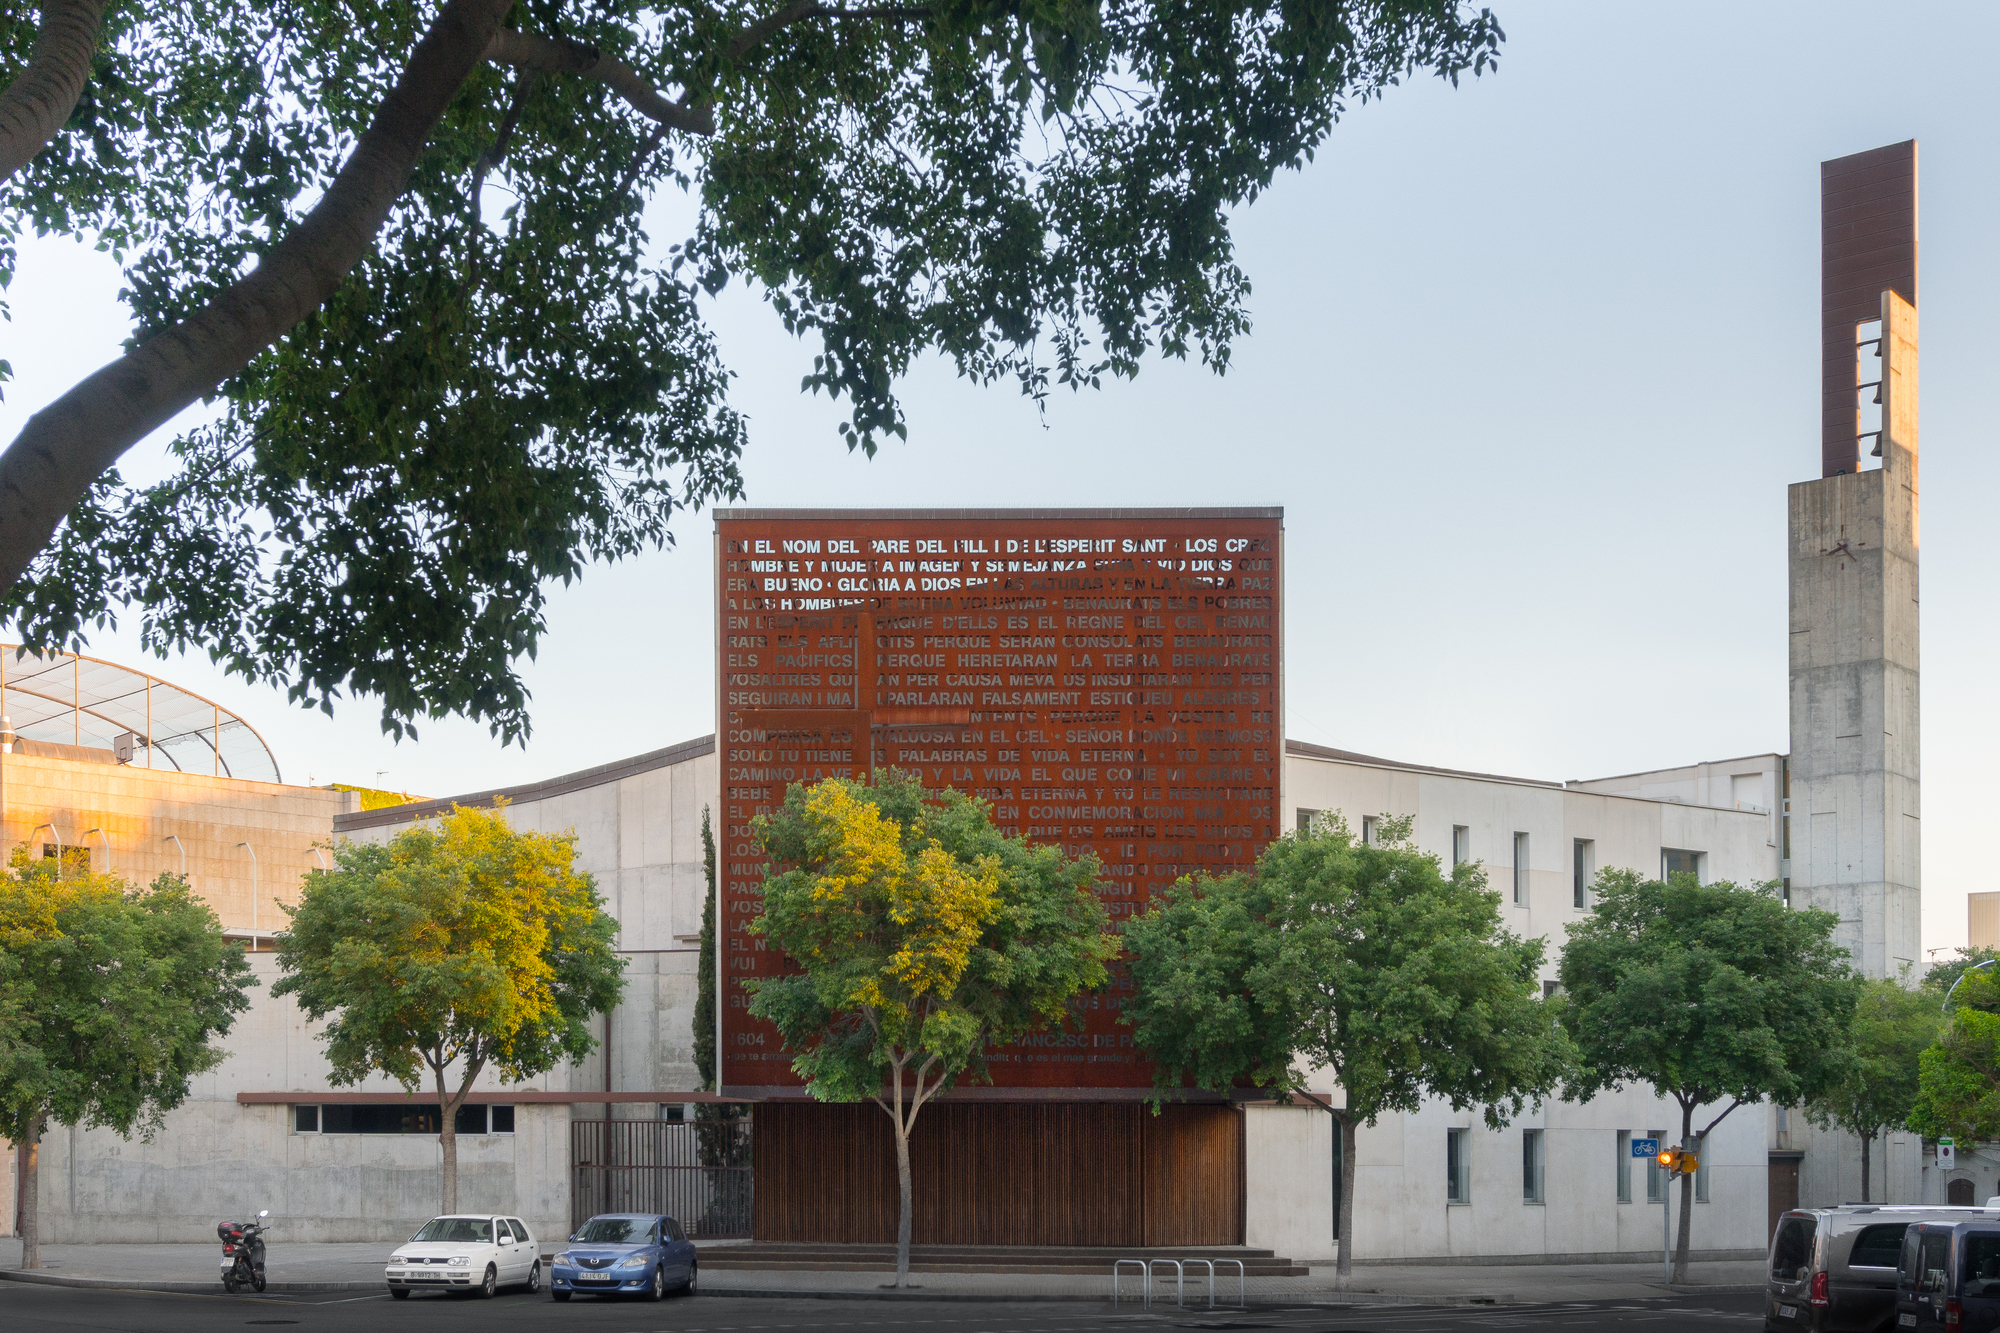 Church in Diagonal Mar / ERITHACUS | ArchDaily